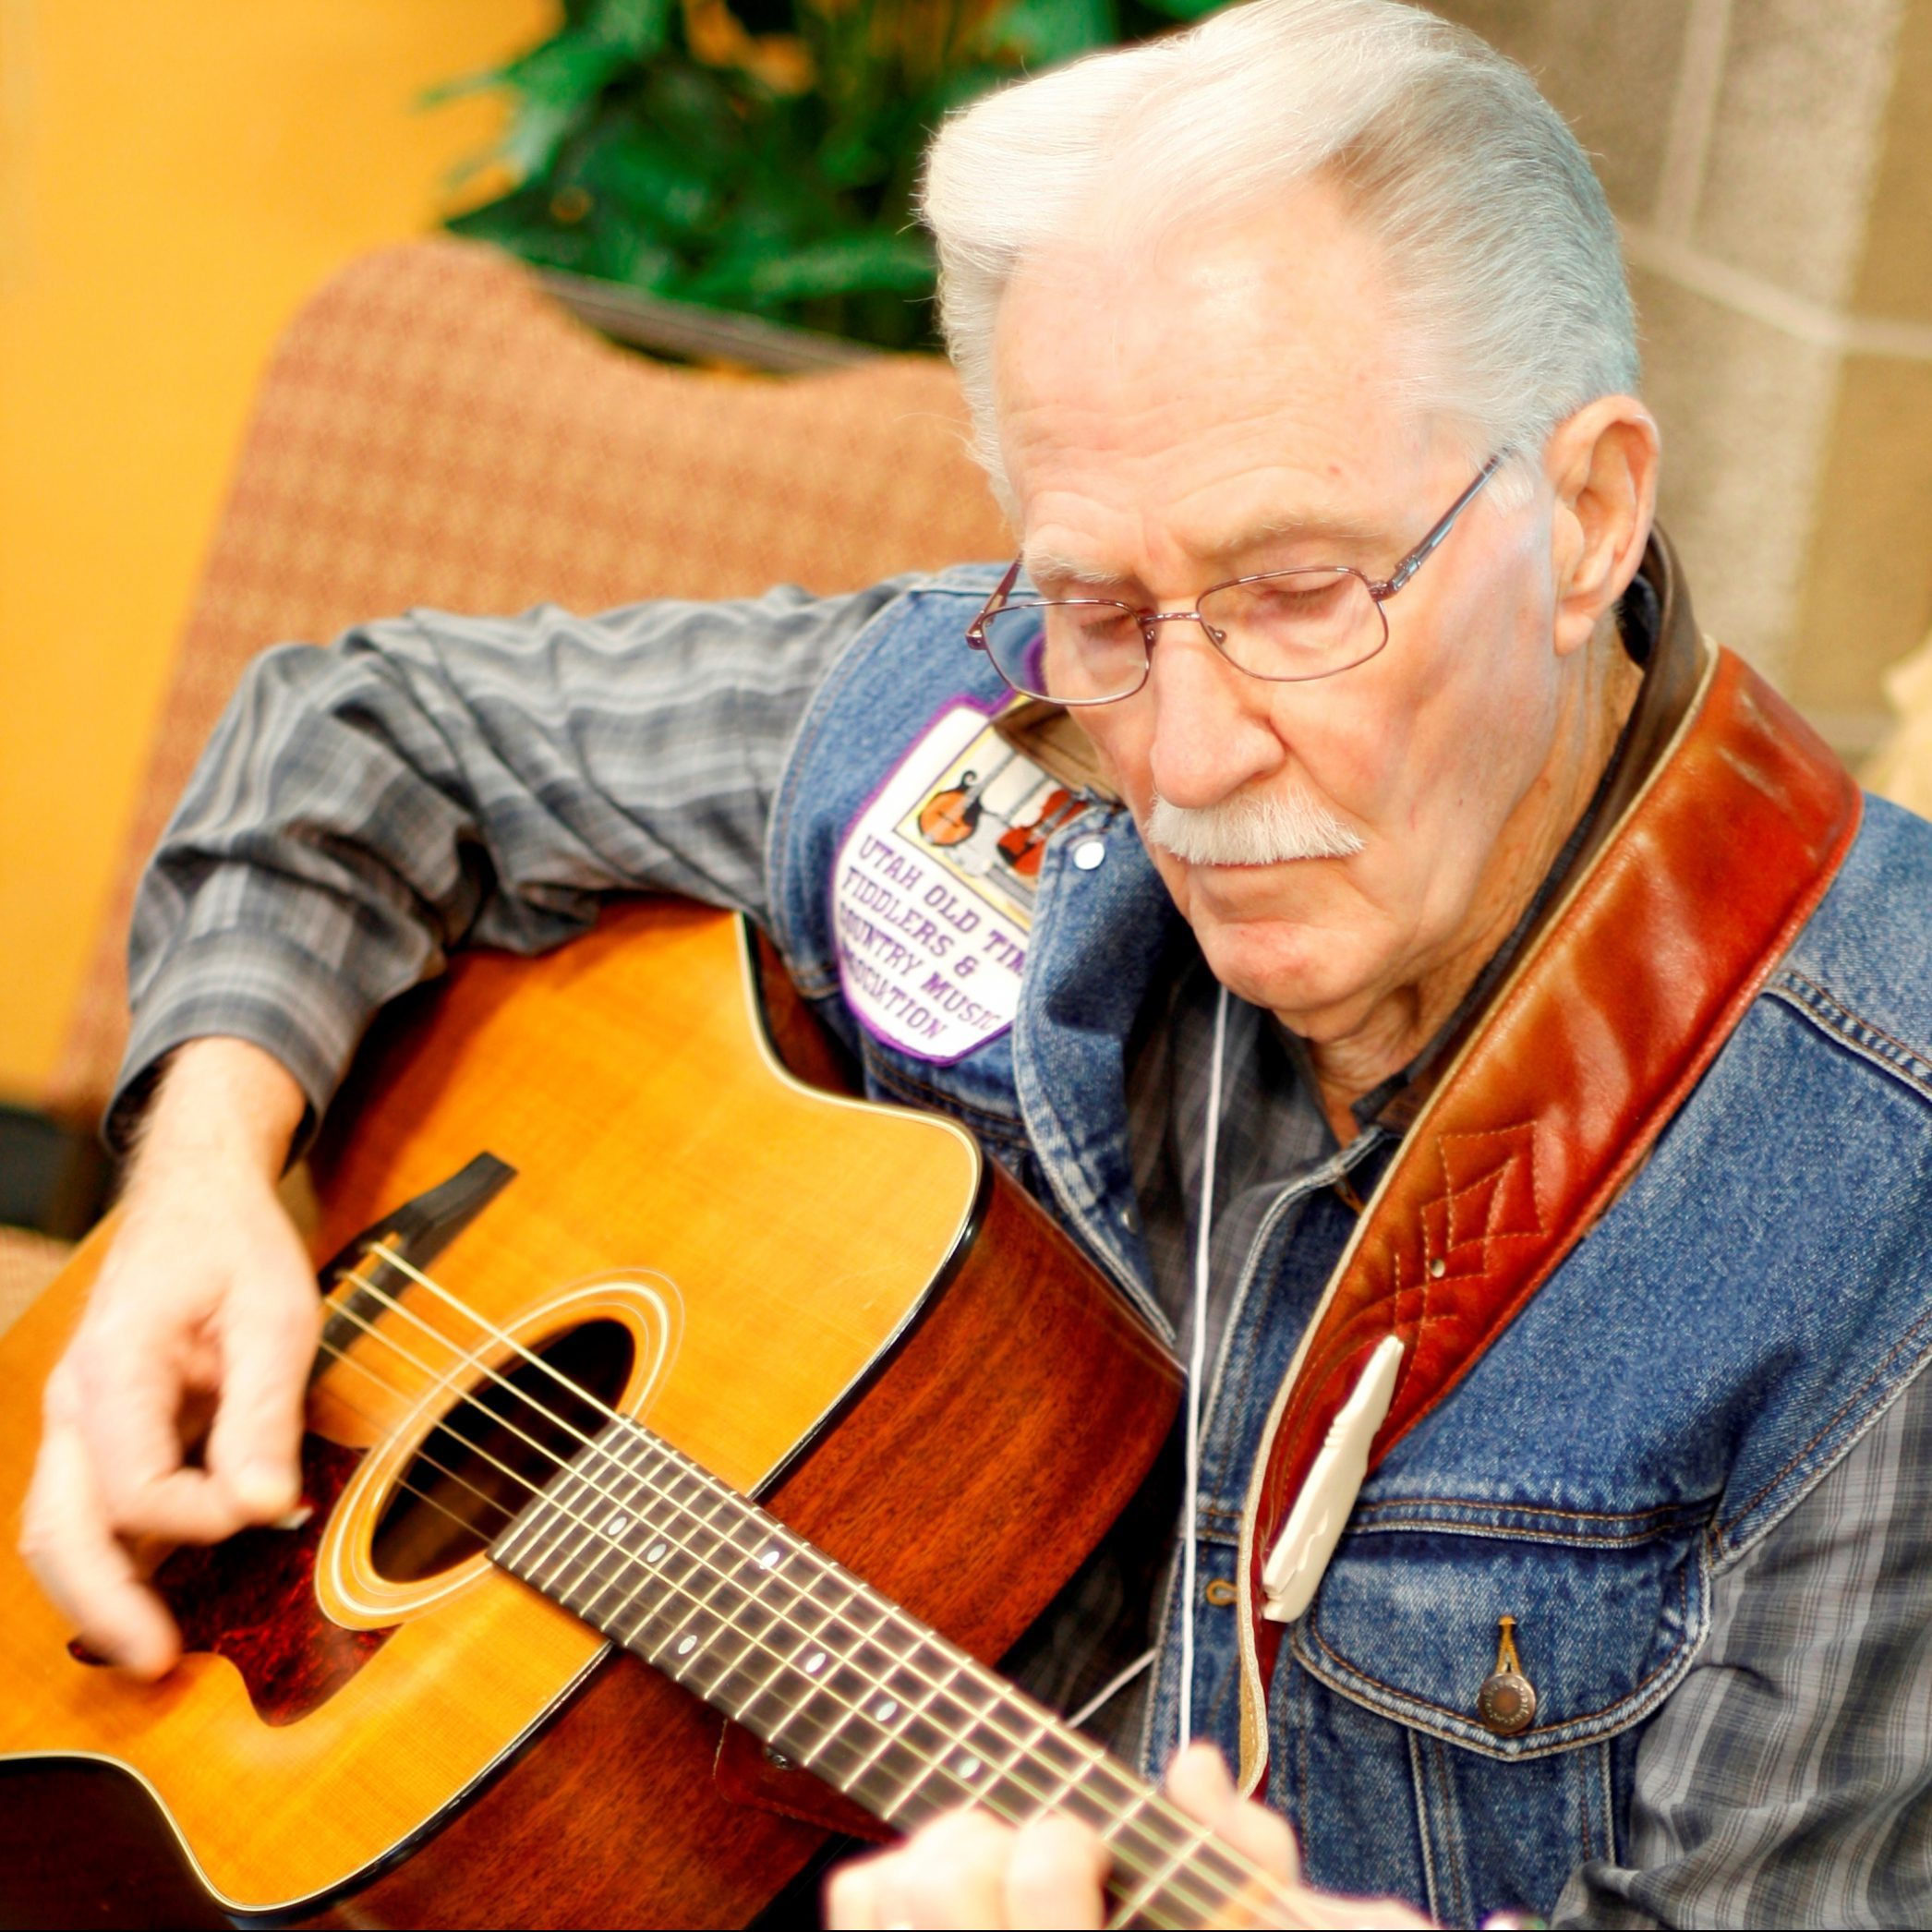 A senior man with short, white hair, a mustache, and glasses sits playing a guitar.